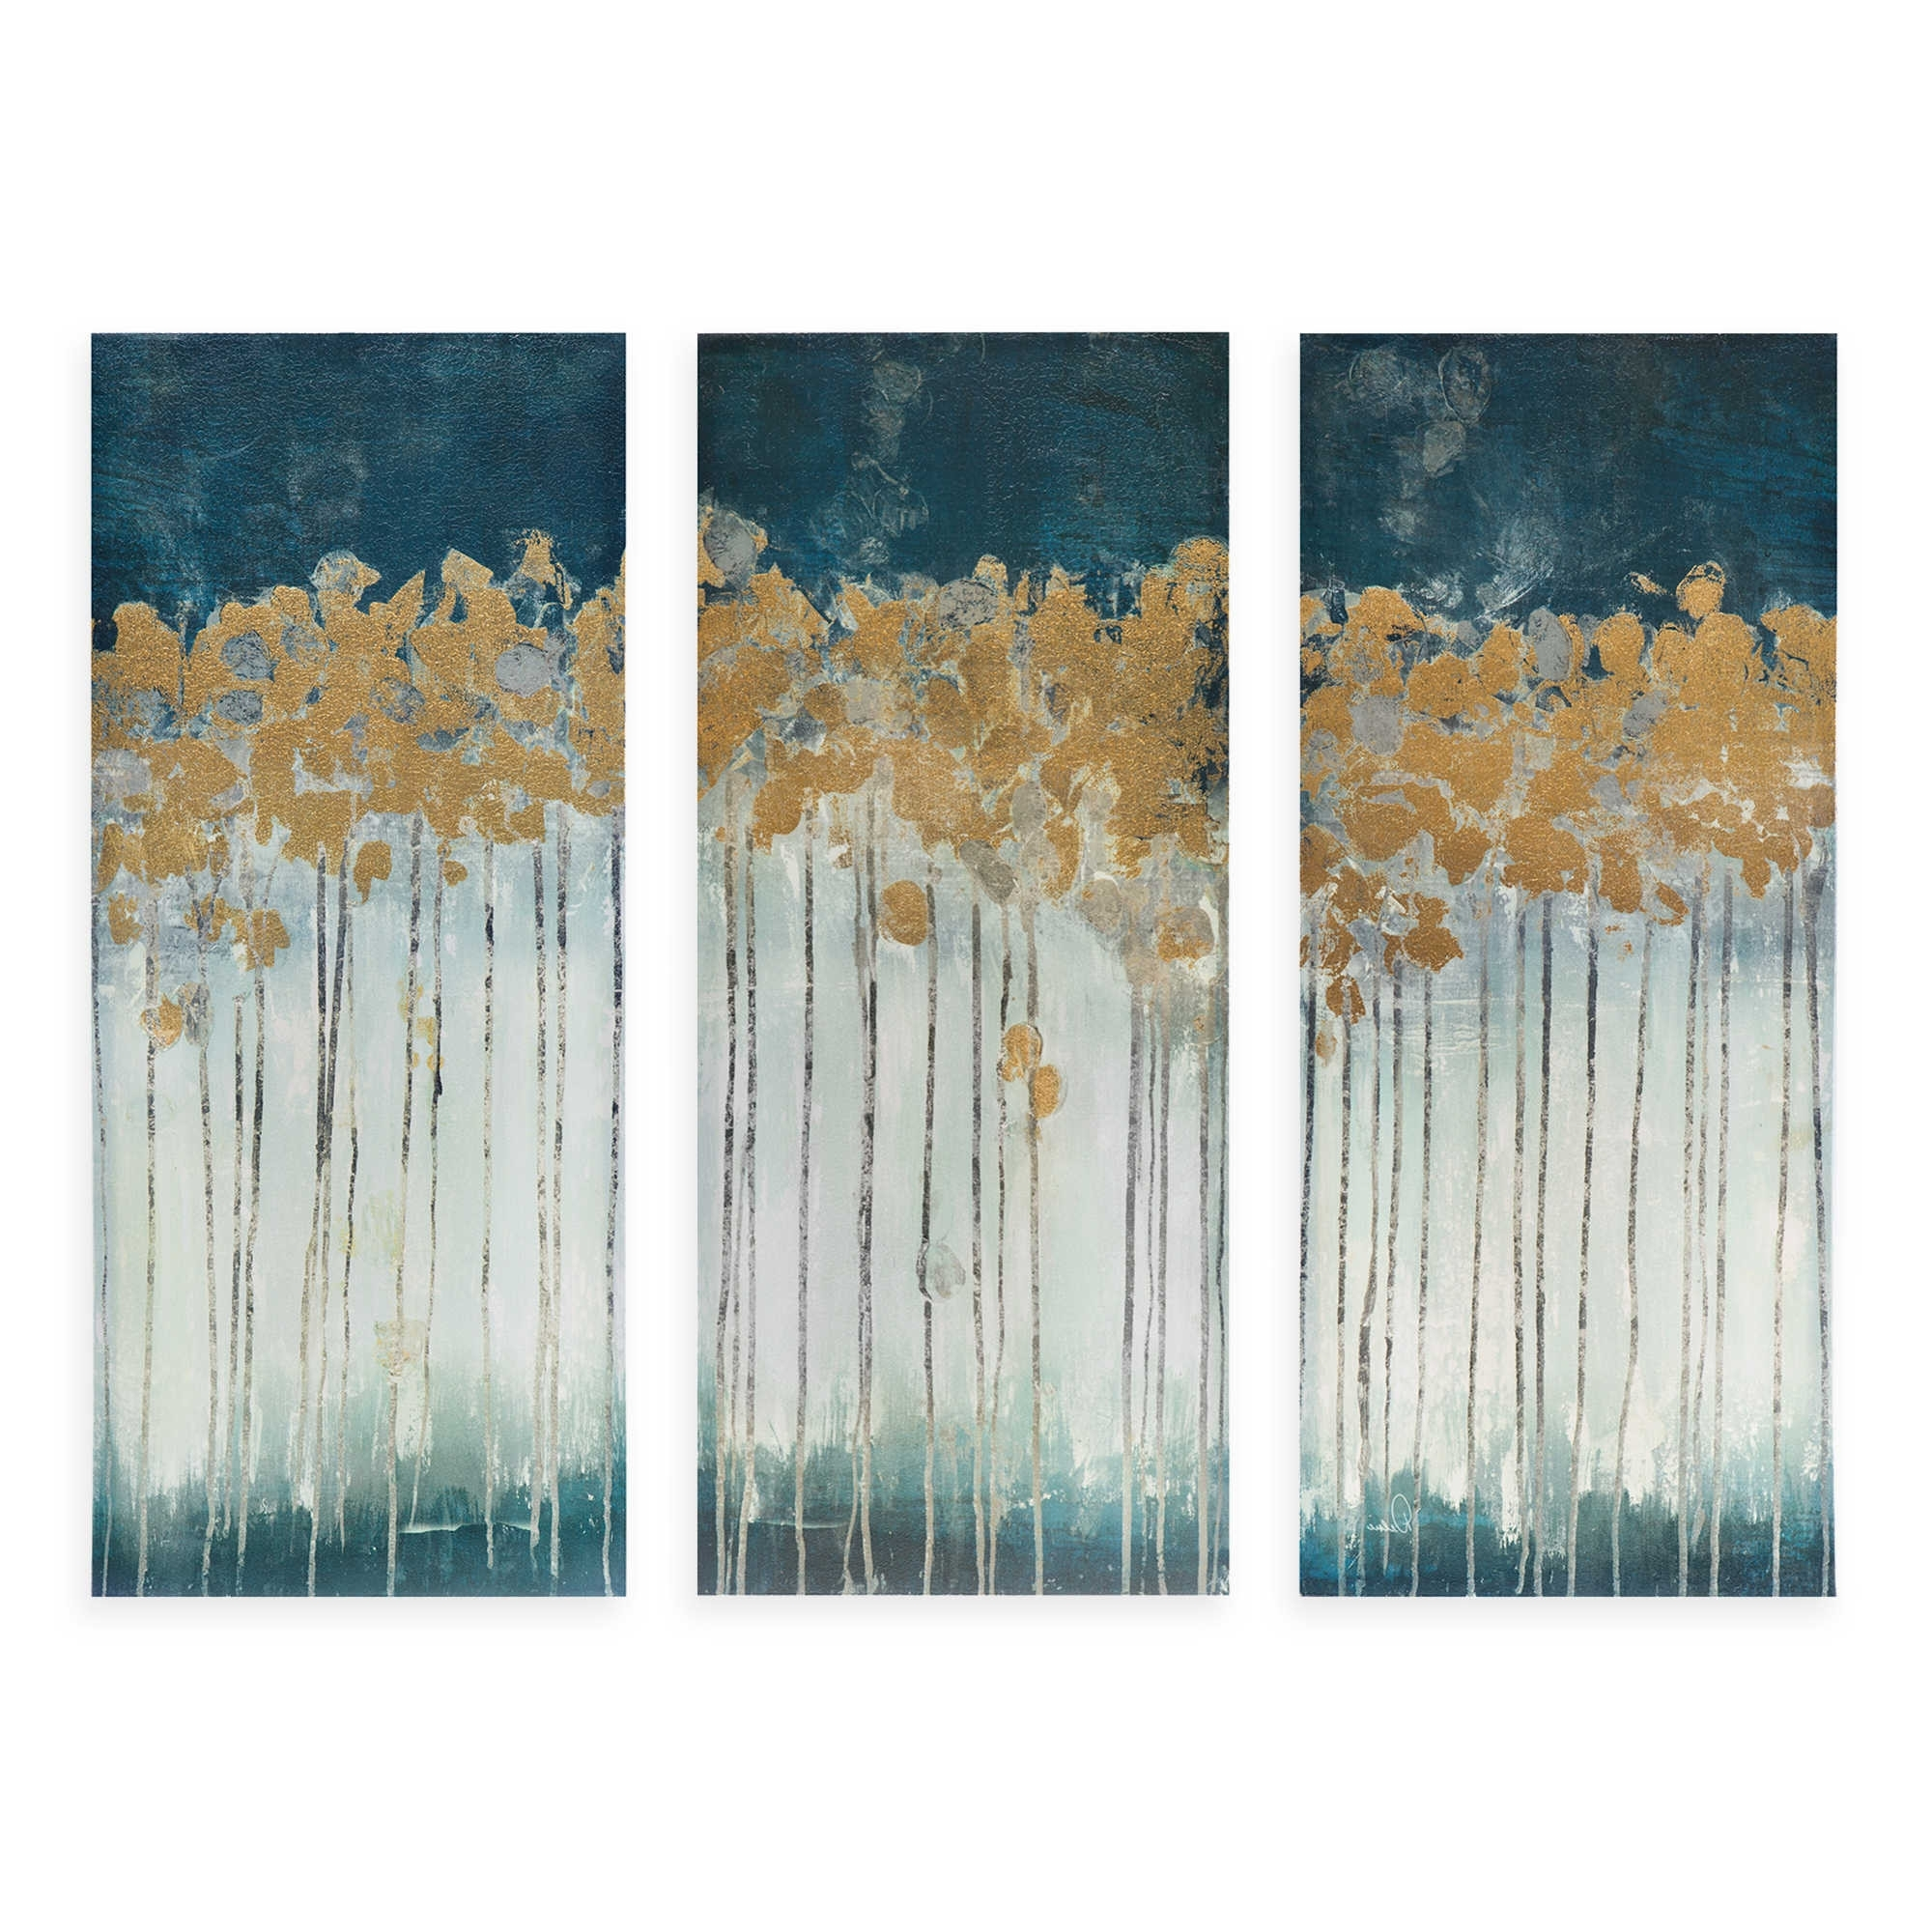 3 Piece Wall Art Lovely 31 Beautiful Wayfair Wall Decor – Mehrgallery Throughout Recent Wayfair Wall Art (Gallery 14 of 15)